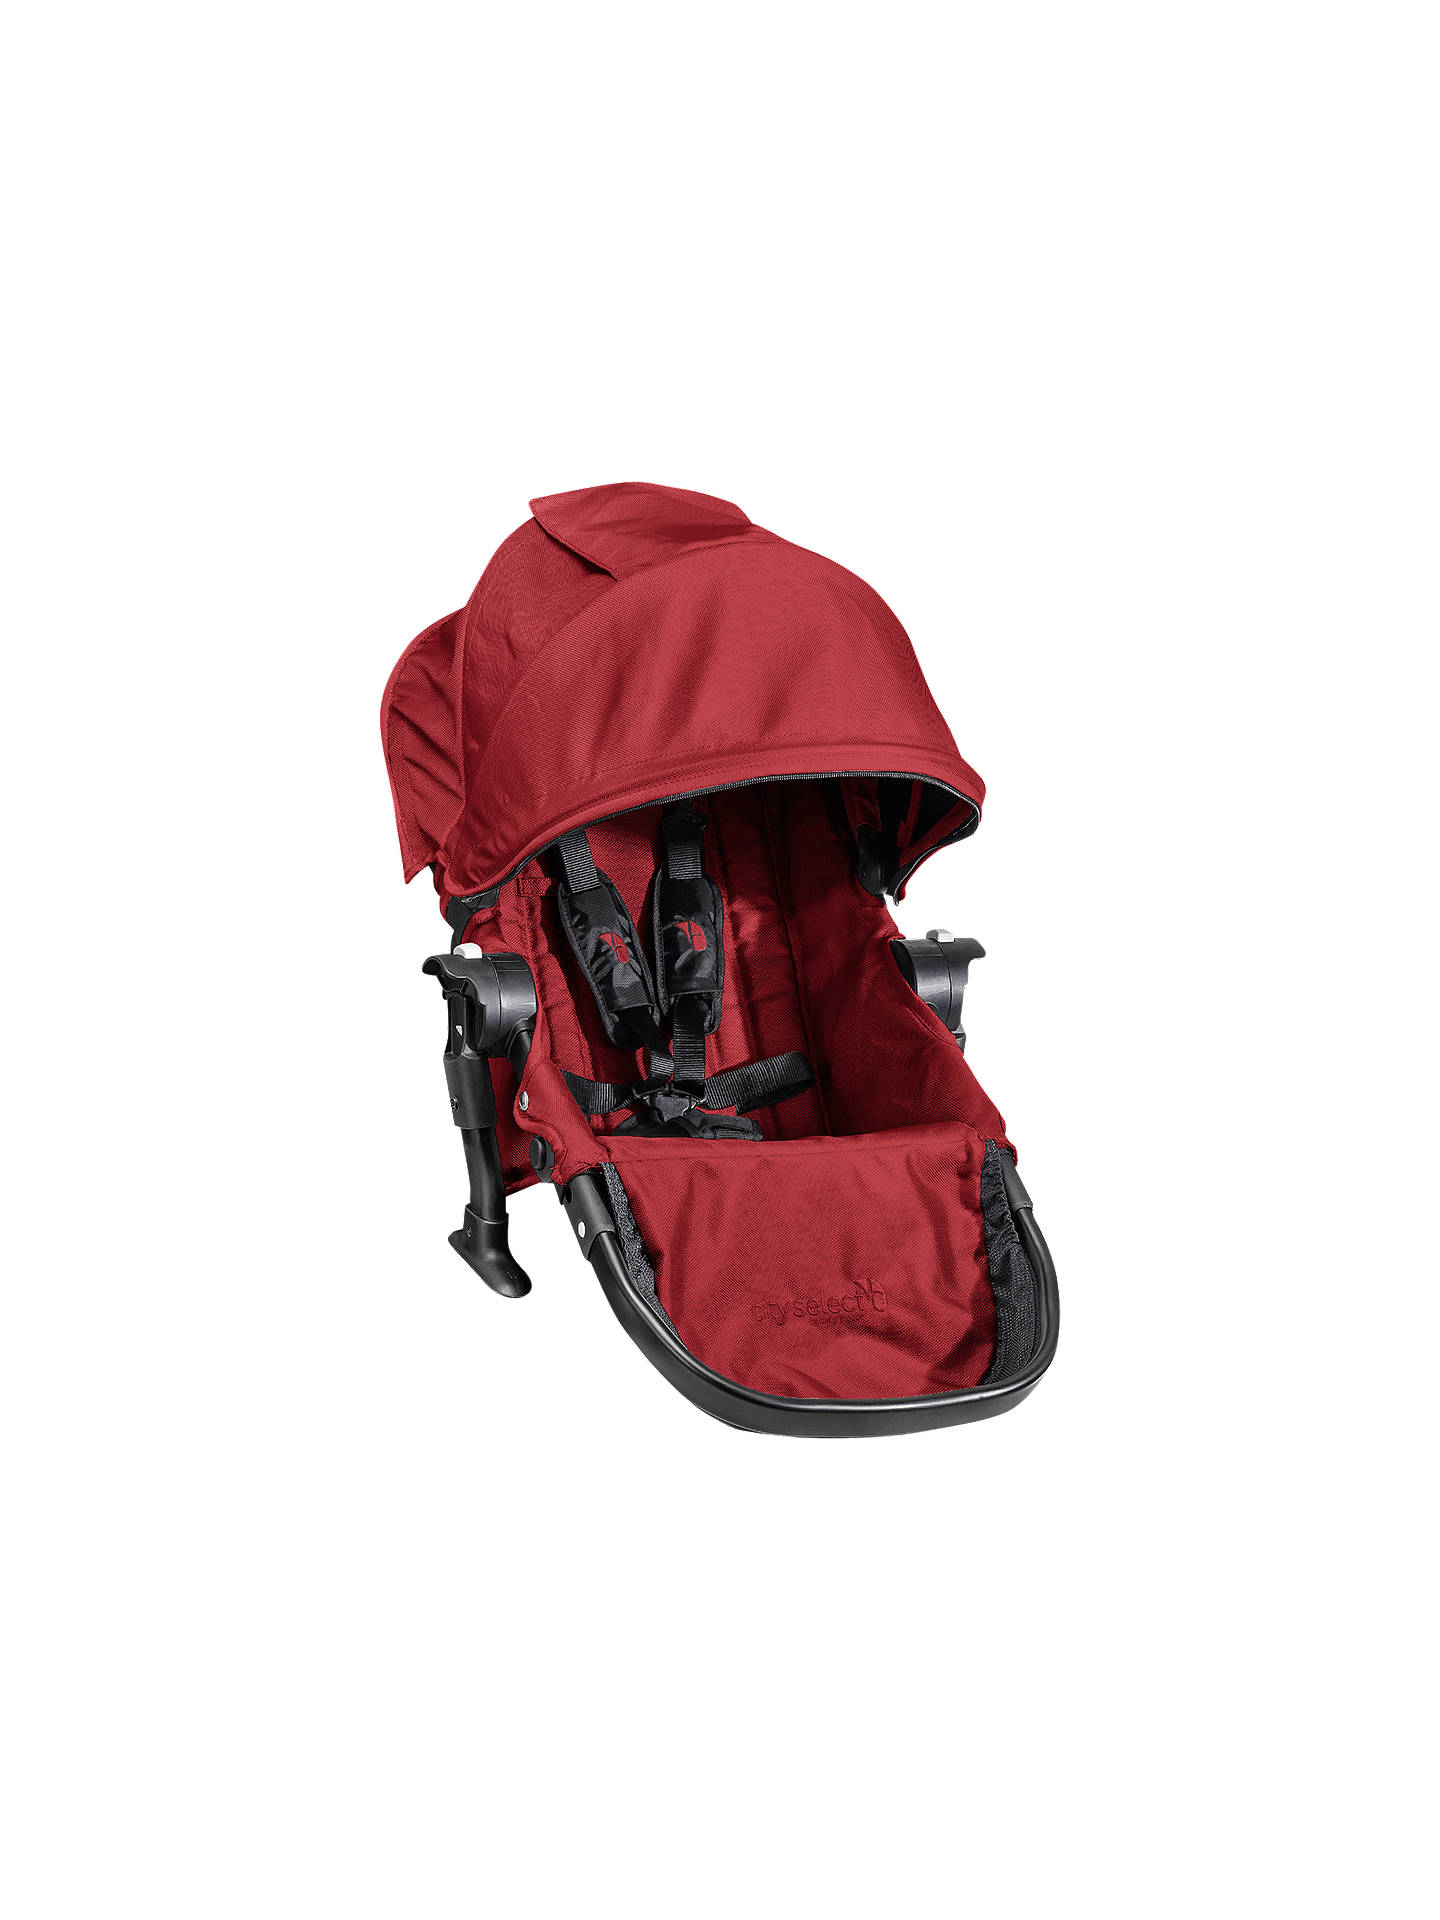 d4dcdfac9fa0 Buy Baby Jogger City Select Second Seat Kit, Garnet Online at johnlewis.com